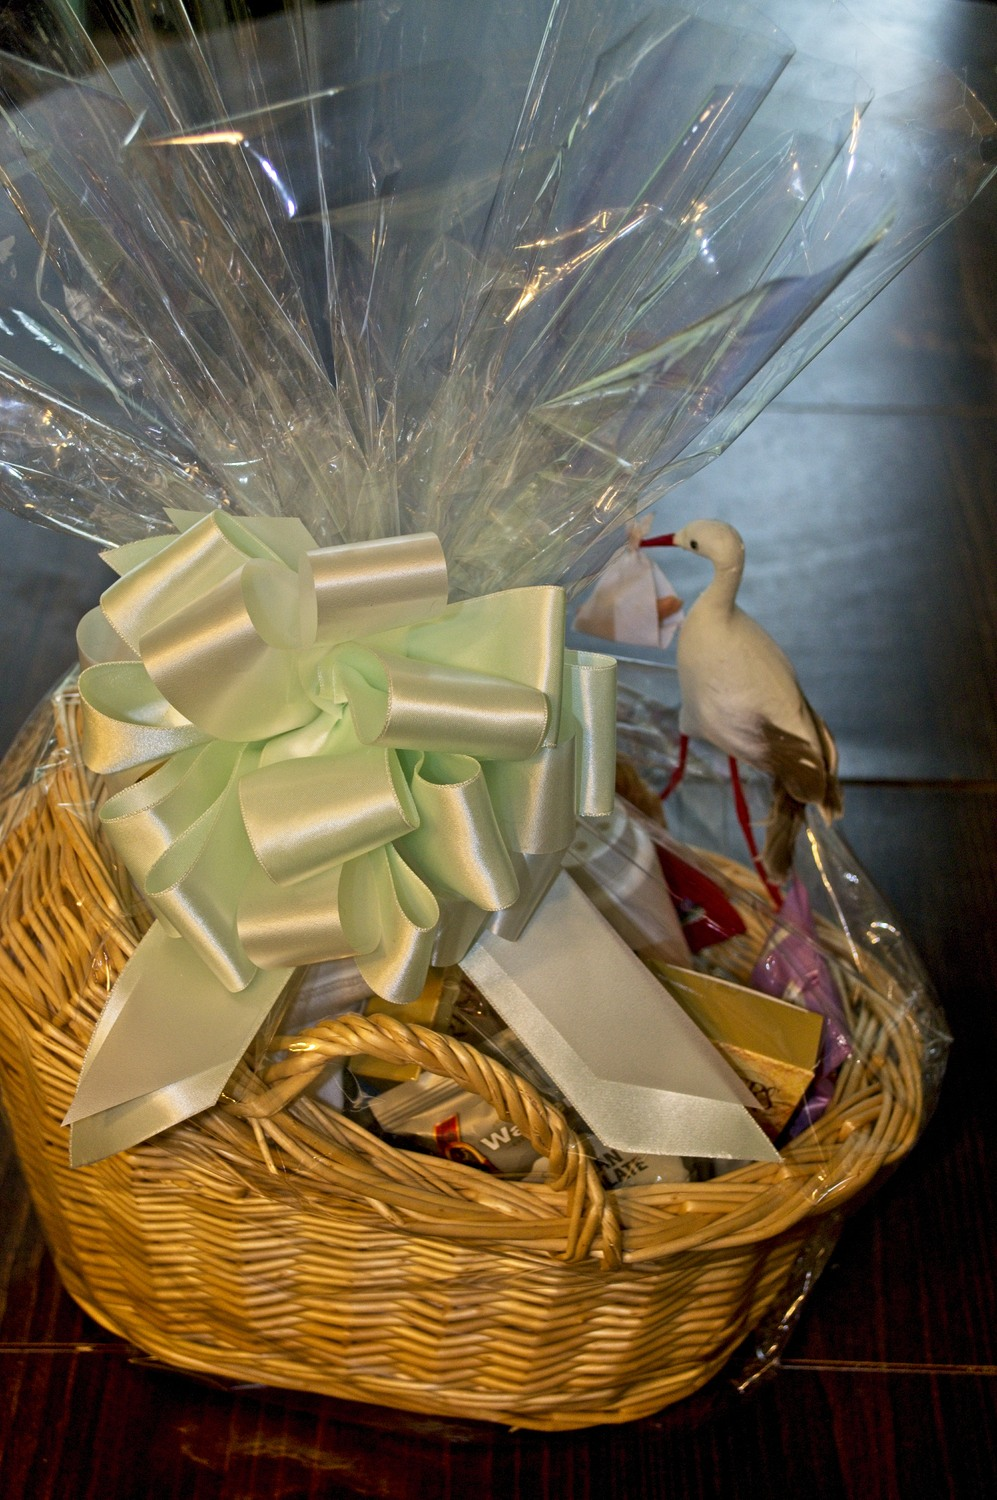 cradle-shaped basket filled with gifts for baby and parents